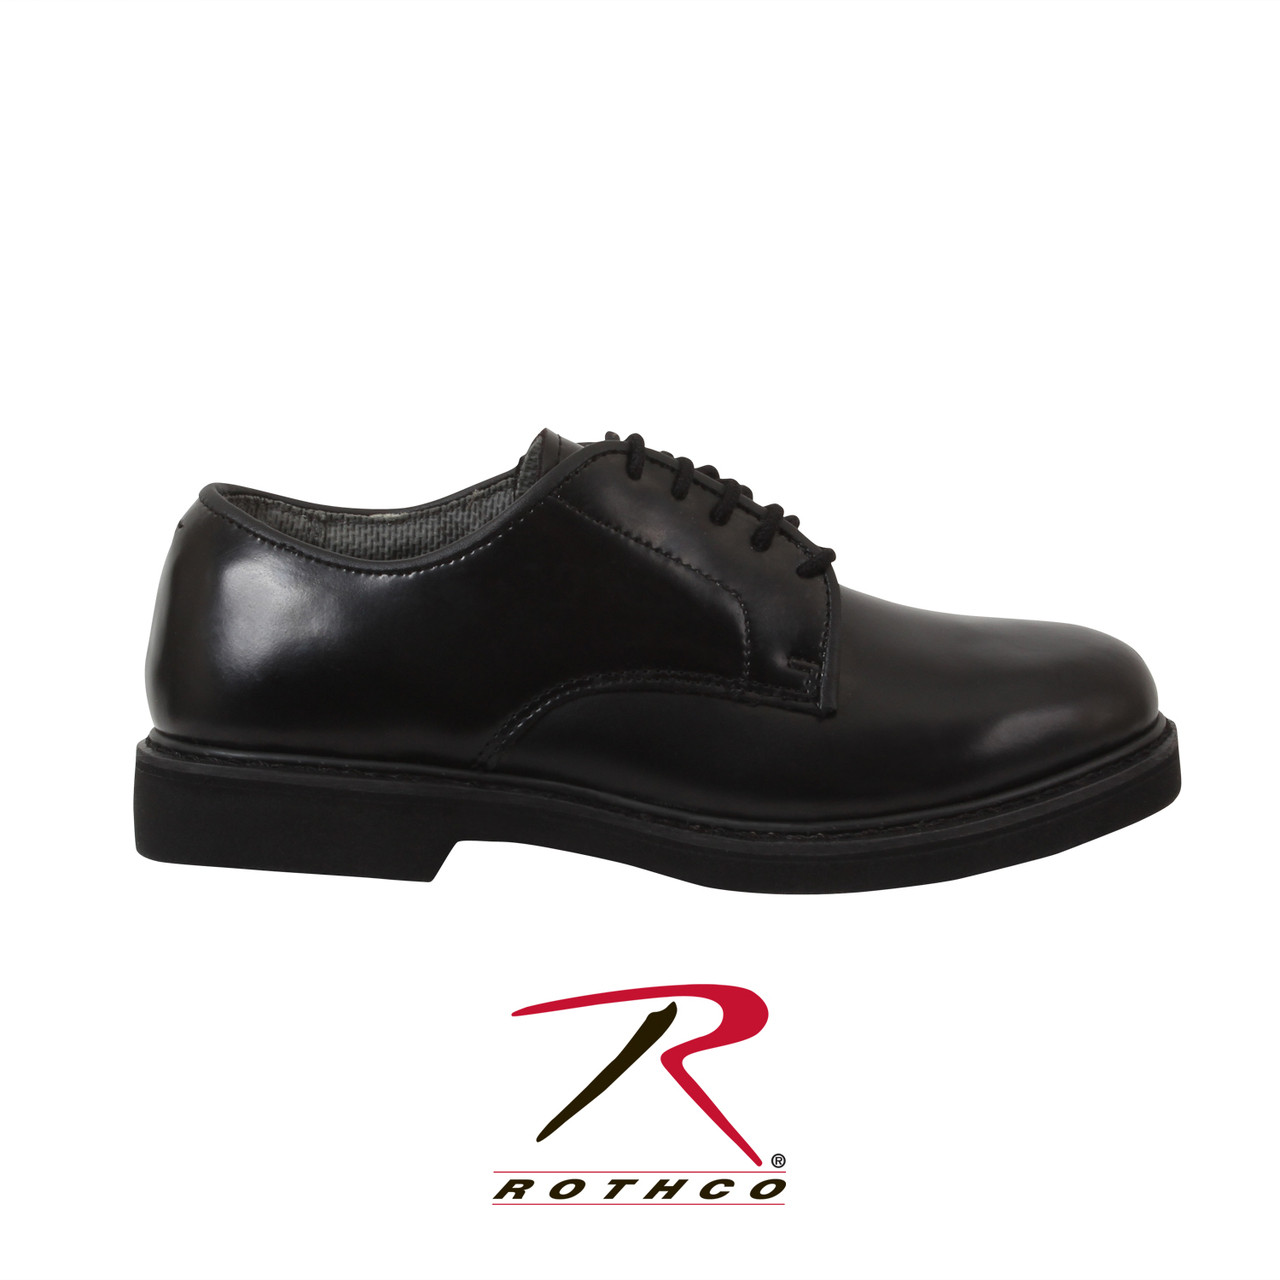 Military Uniform Oxford Leather Shoes - Hero Outdoors 8a7d511459f